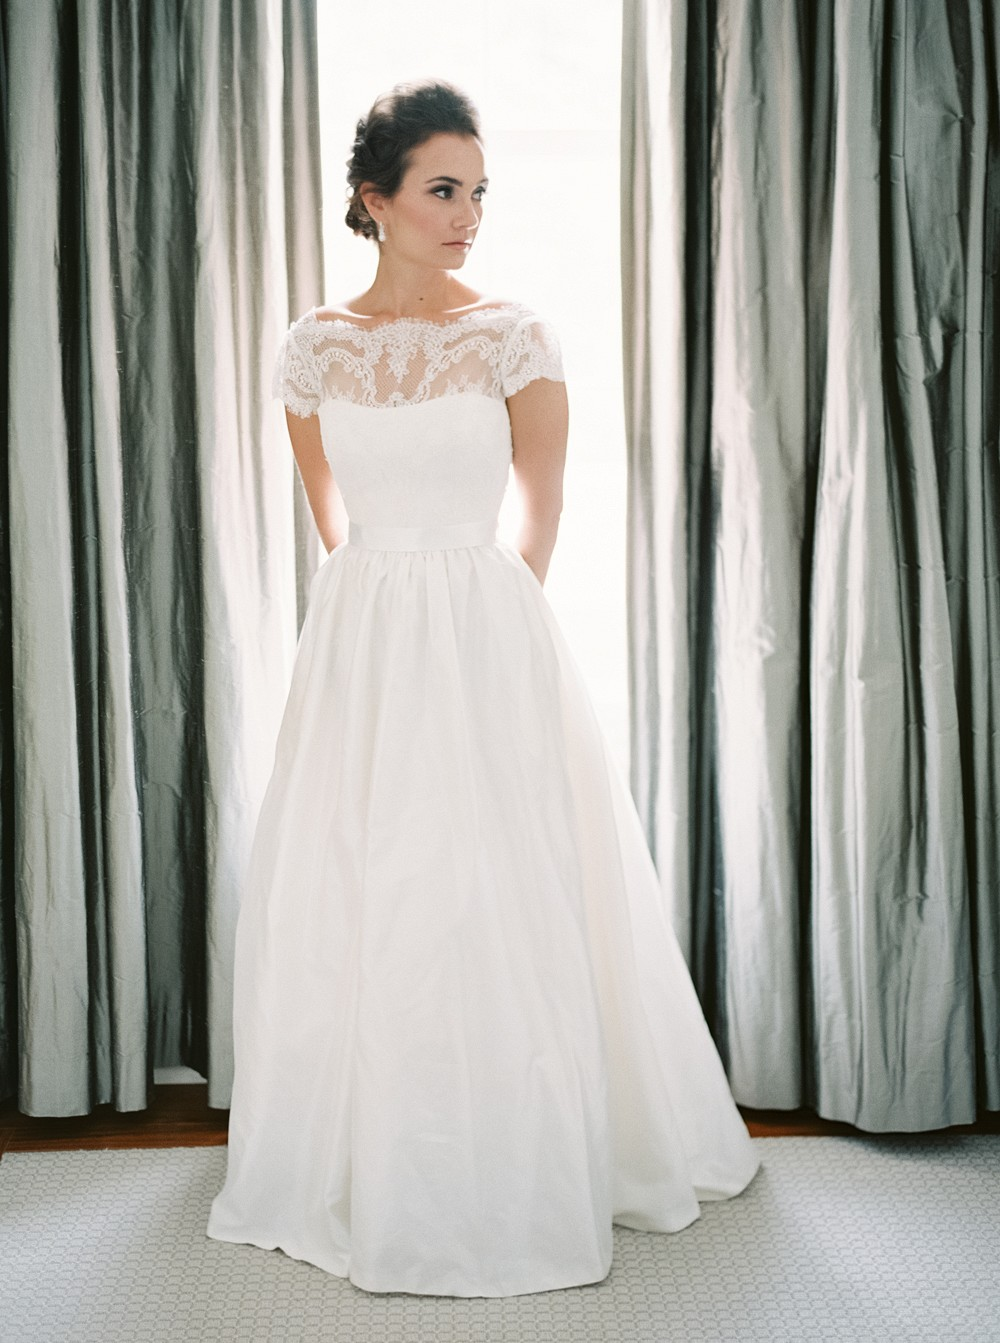 Tara Keely Wedding Gown | Sophisticated Real Wedding in Ontario by When He Found Her on Wedding Sparrow